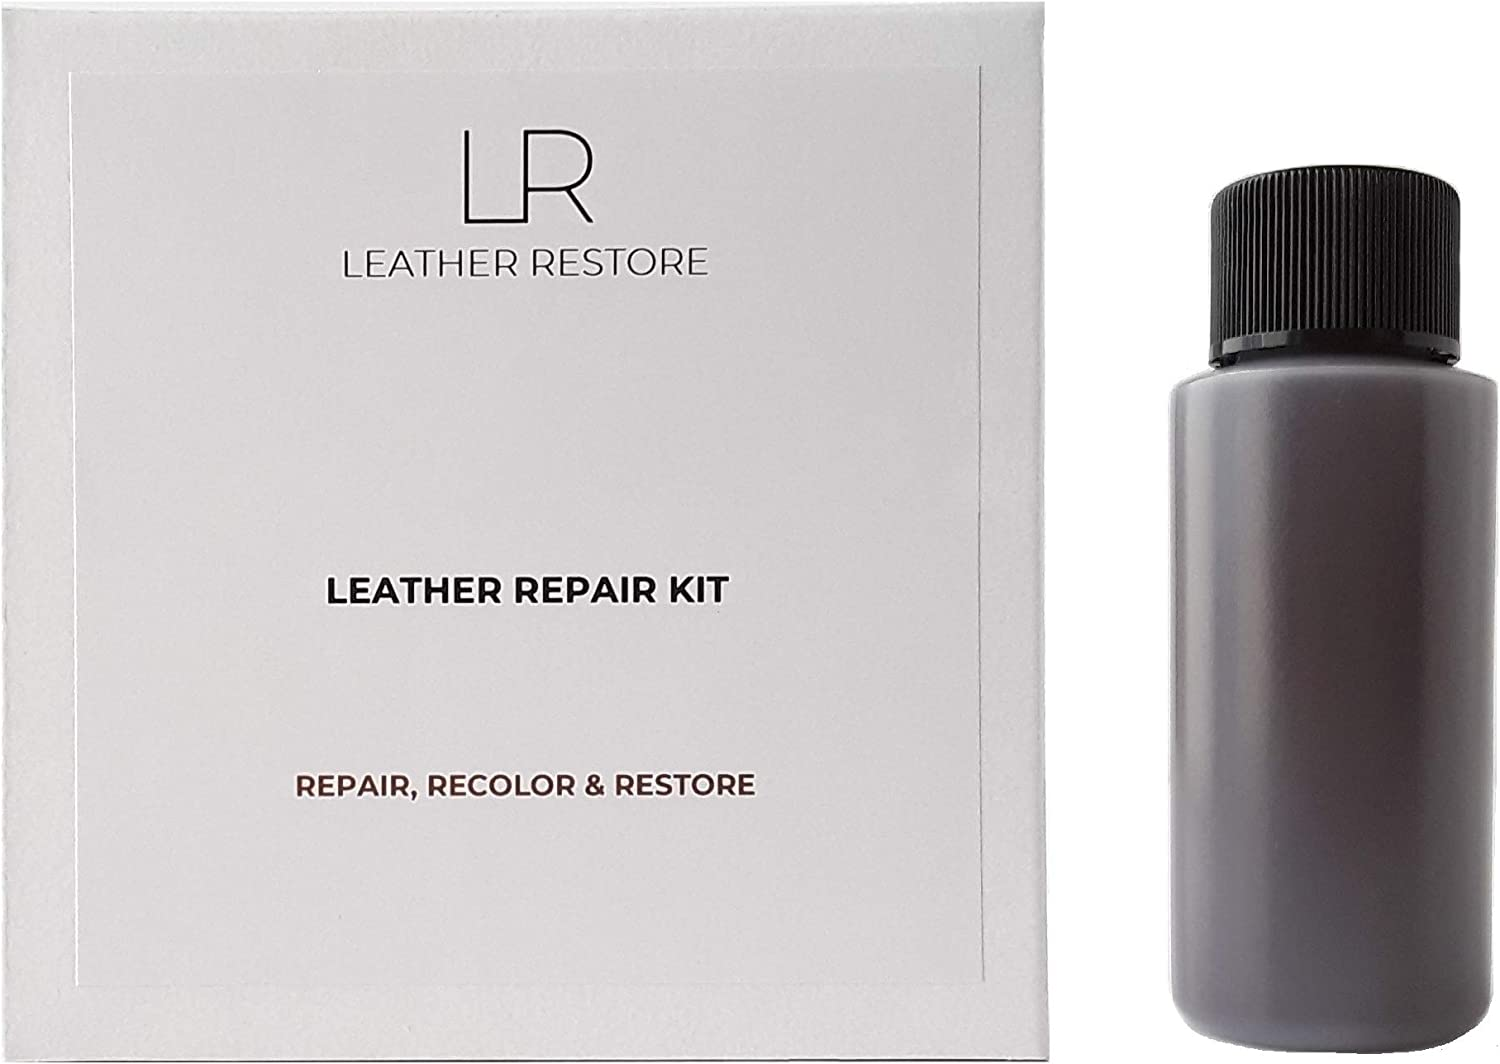 Leather and Vinyl Repair Kit with Ready to Use Color, Dark Brown - Repair, Recolor & Restore Couch, Furniture, Auto Interior & Car Seats